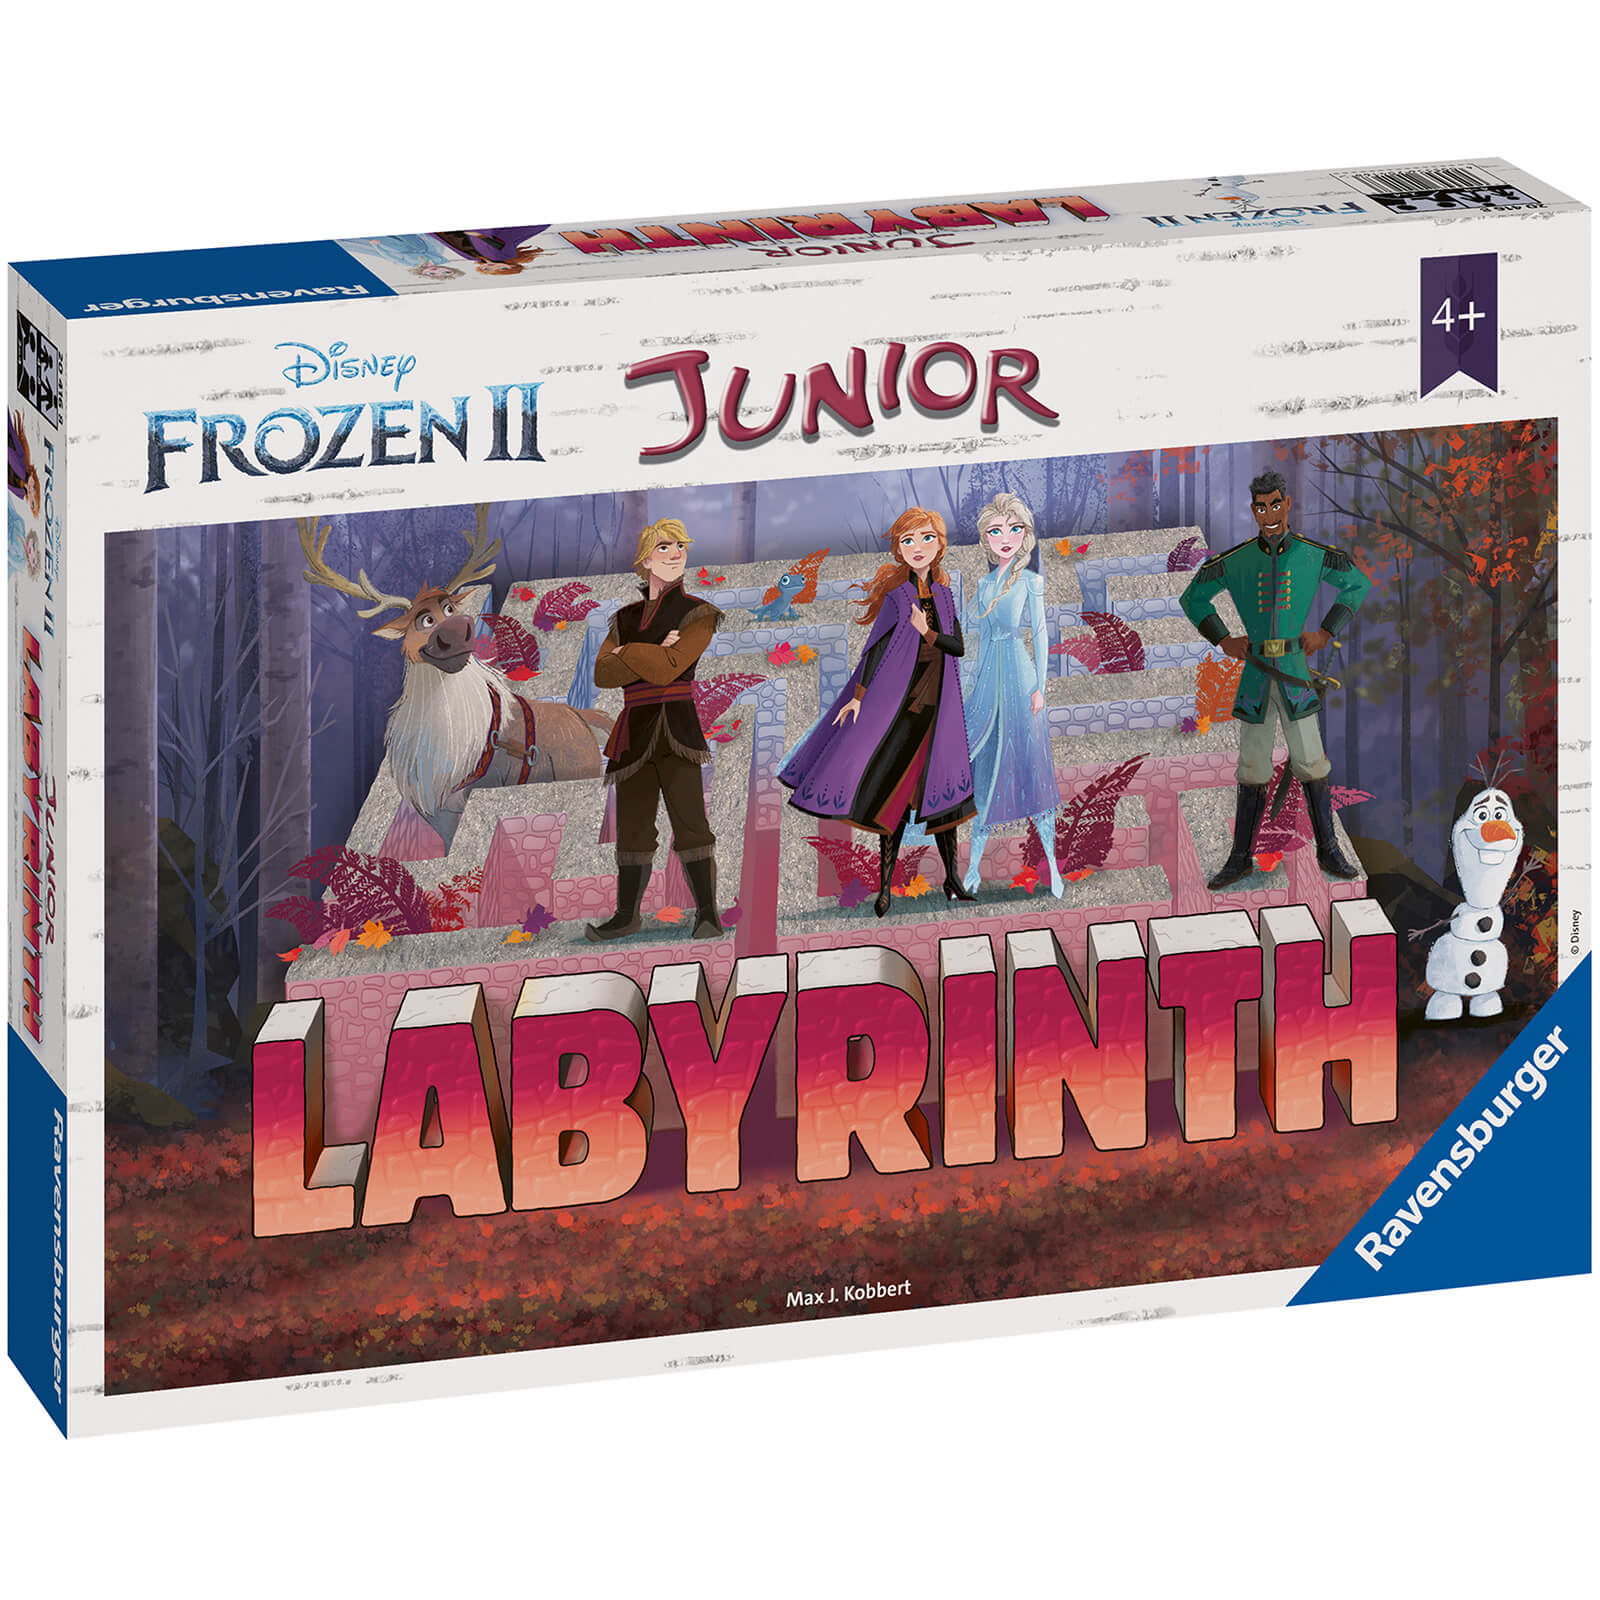 Image of Ravensburger Disney Frozen 2 Labyrinth Junior Board Game